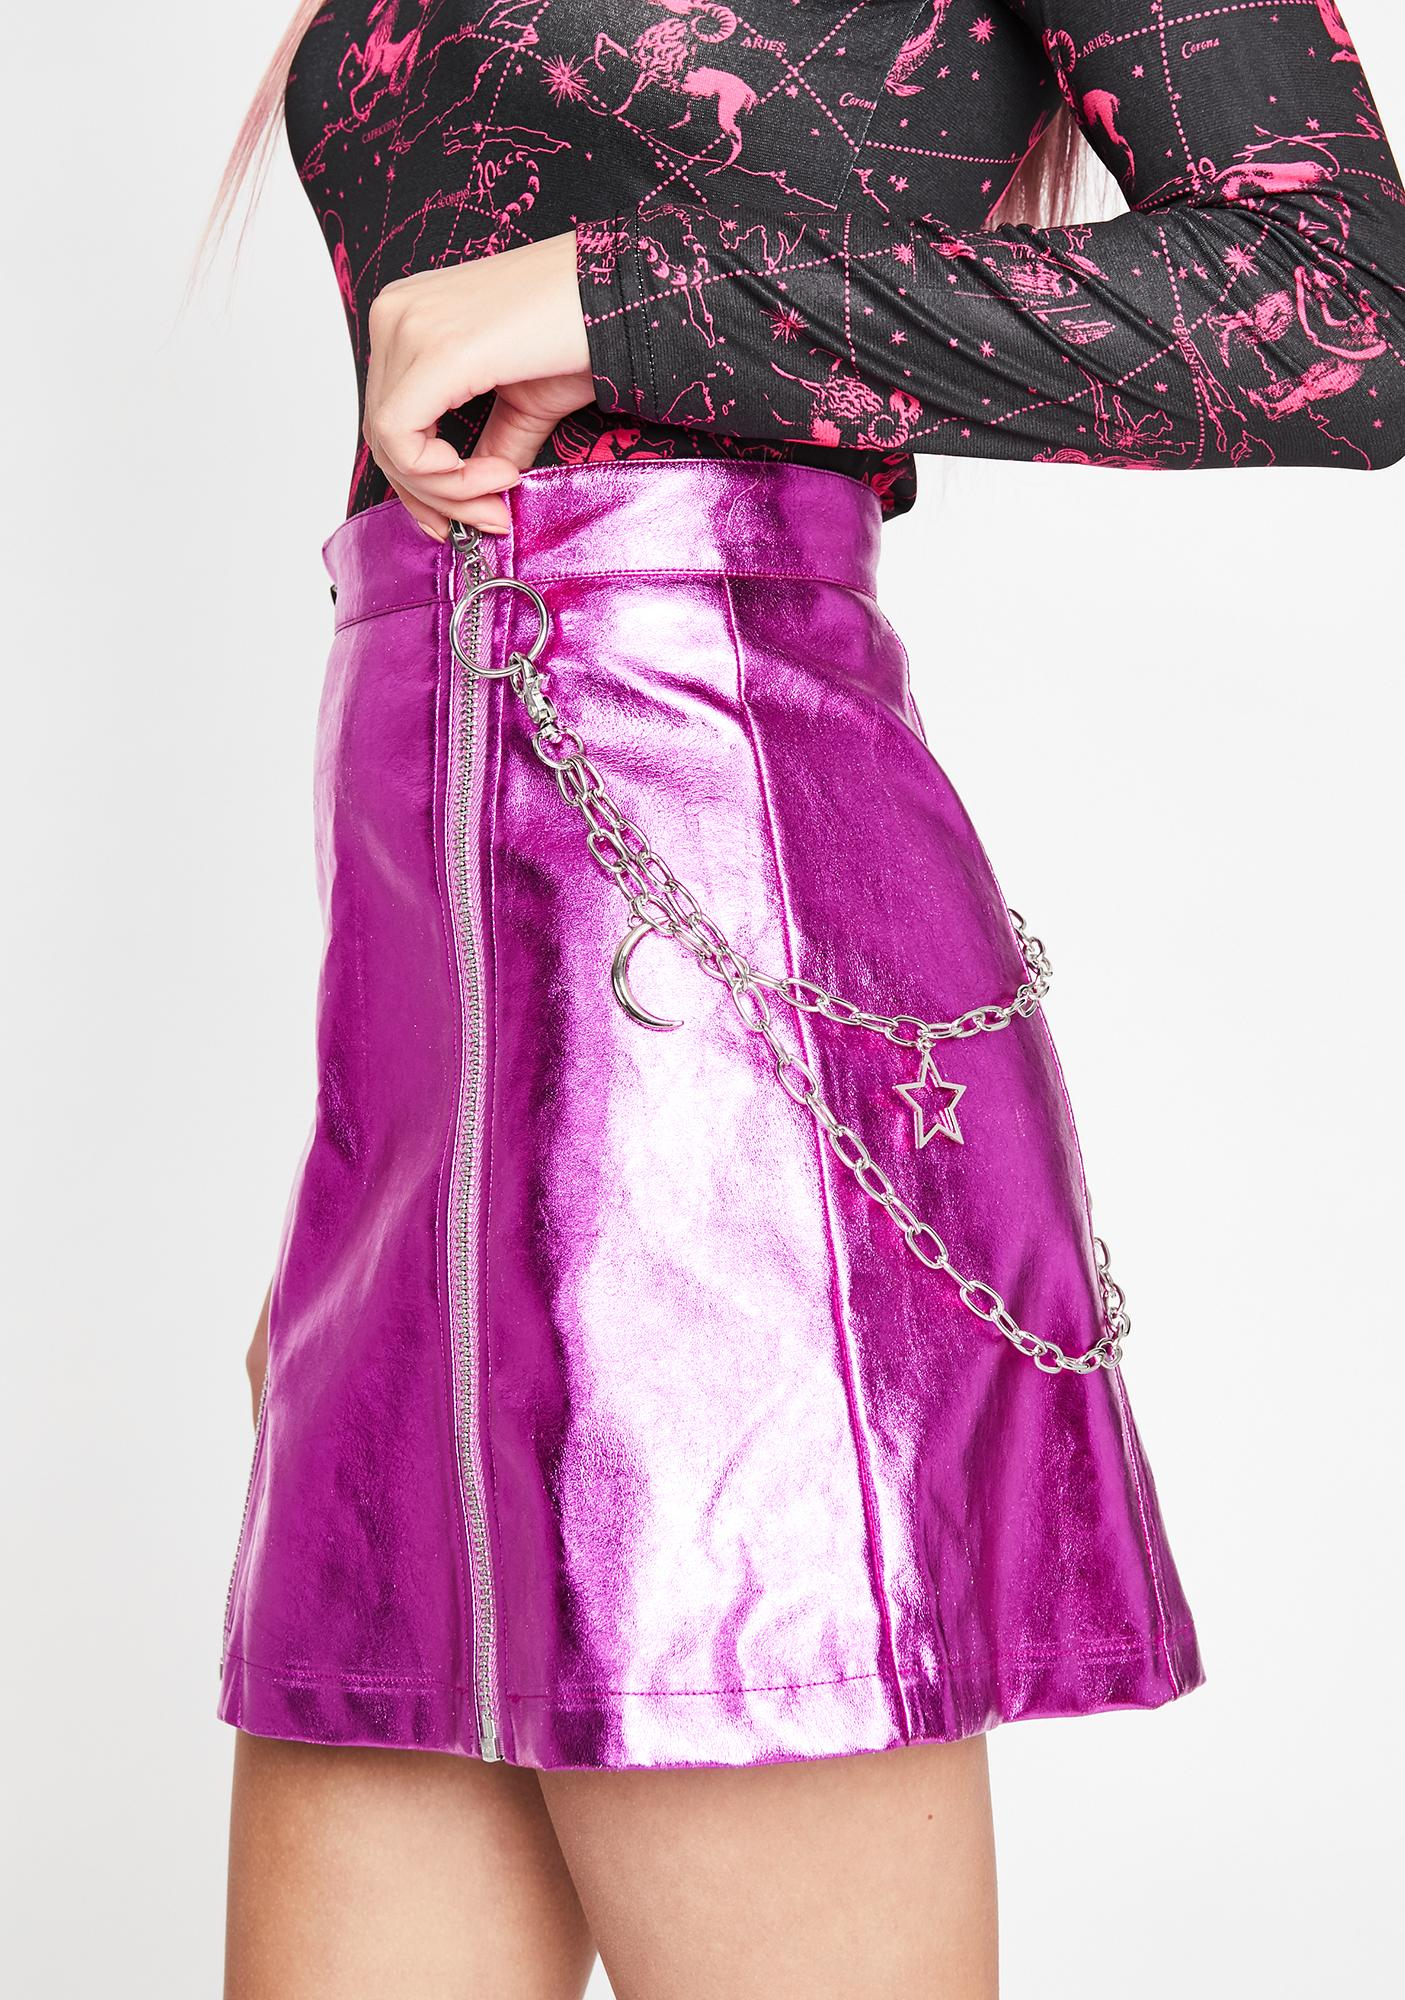 HOROSCOPEZ Rebellious Eternity Metallic Skirt